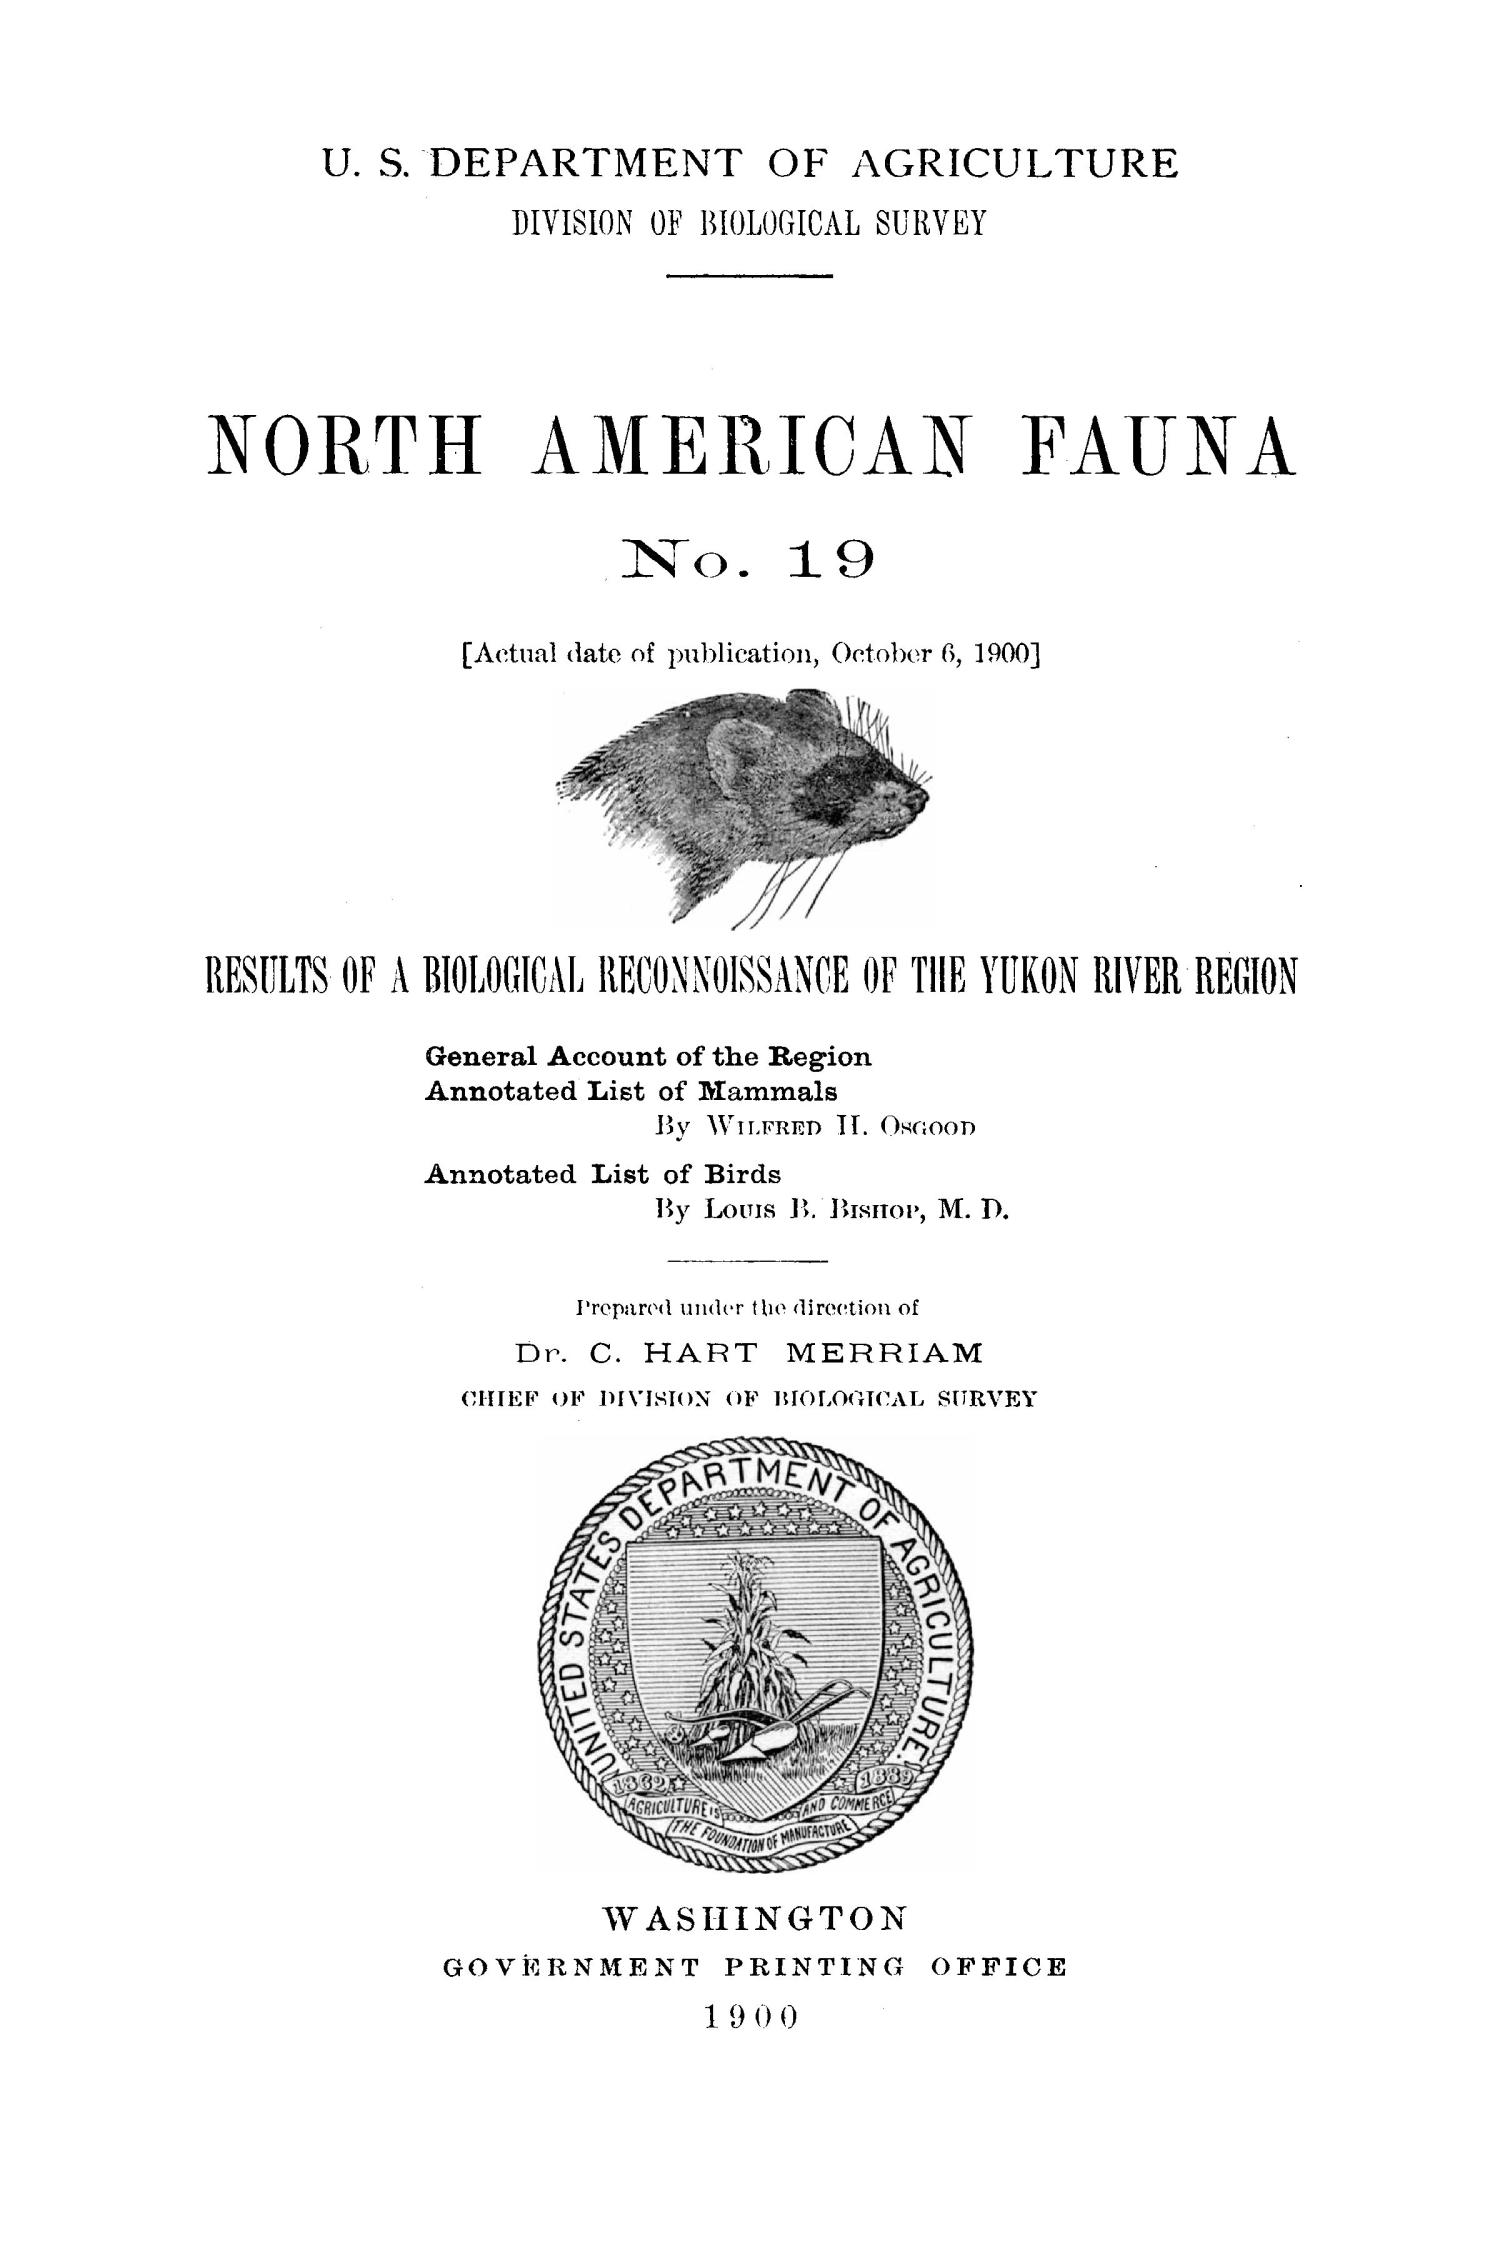 Results of a Biological Reconnaissance of the Yukon River Region                                                                                                      Title Page